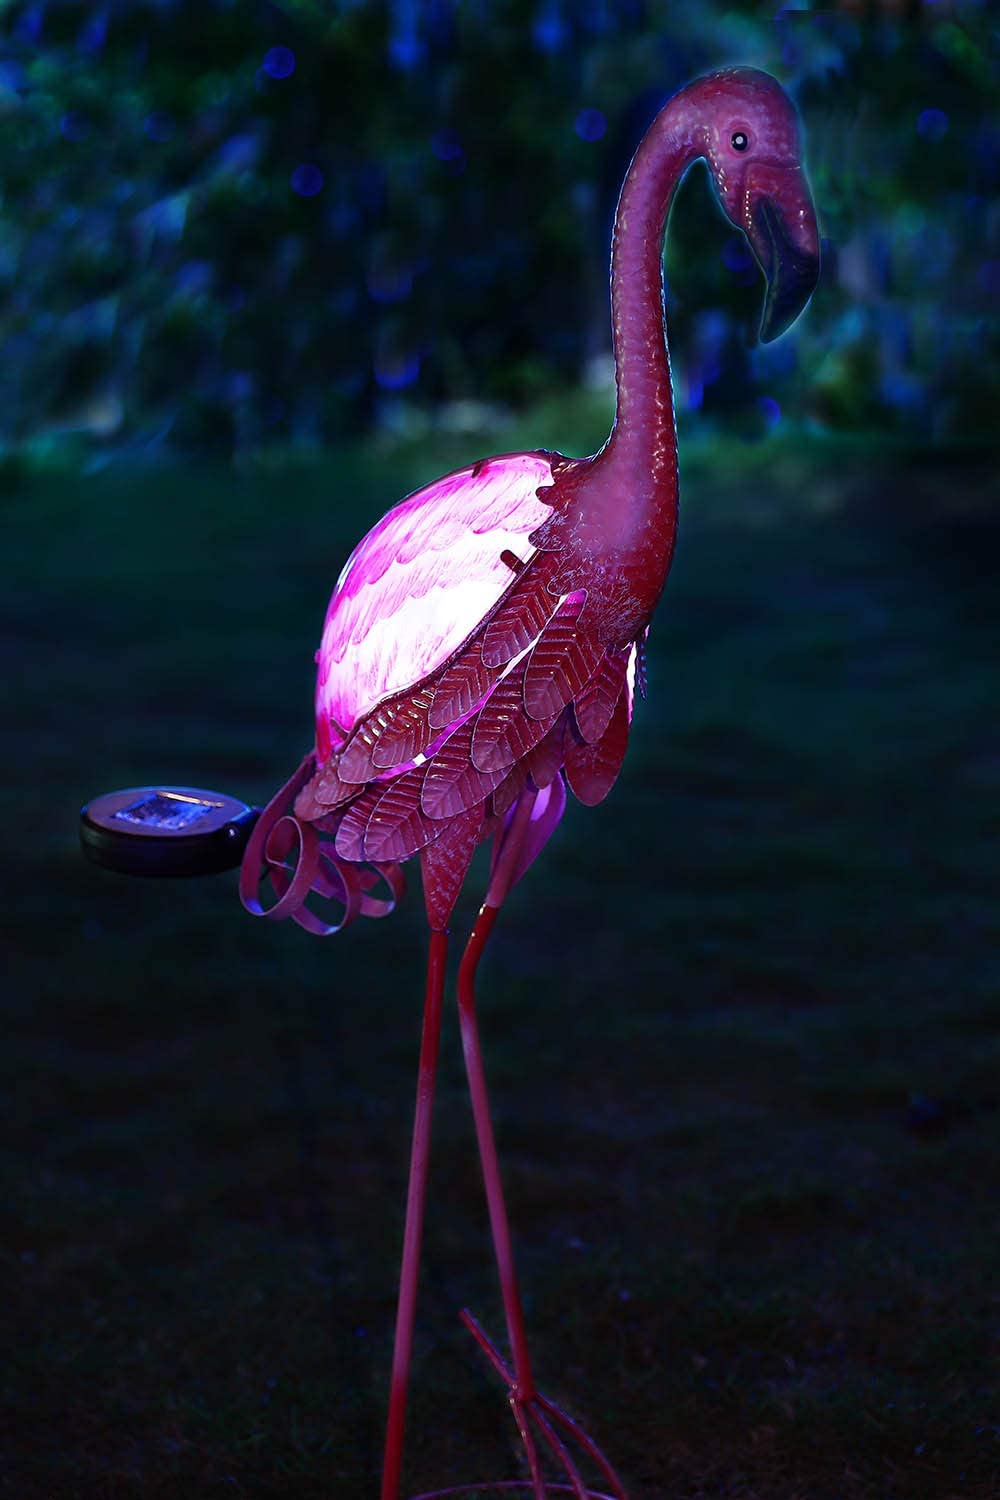 Liffy Metal Solar Flamingo Stake Outdoor LED Lights Ornament Decorative Pathway Decor for Garden Lawn or Yard